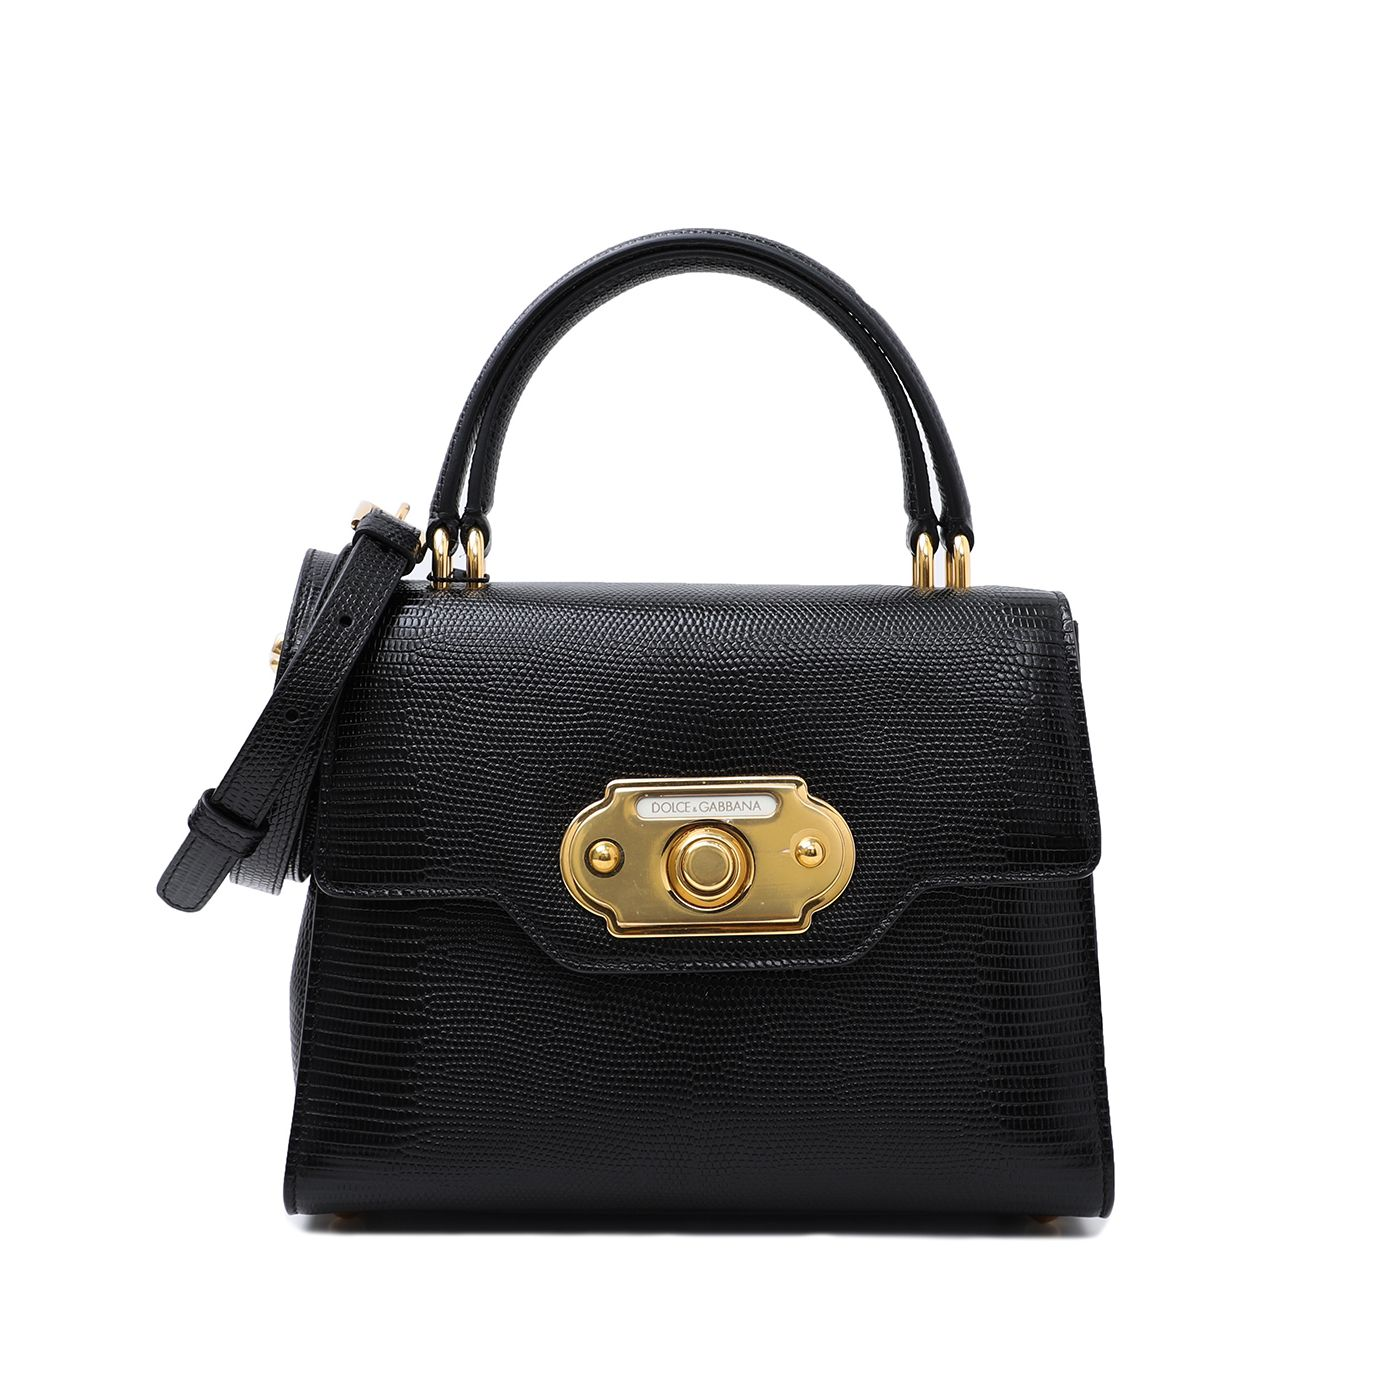 Dolce & Gabbana Black Welcome Top Handle Bag